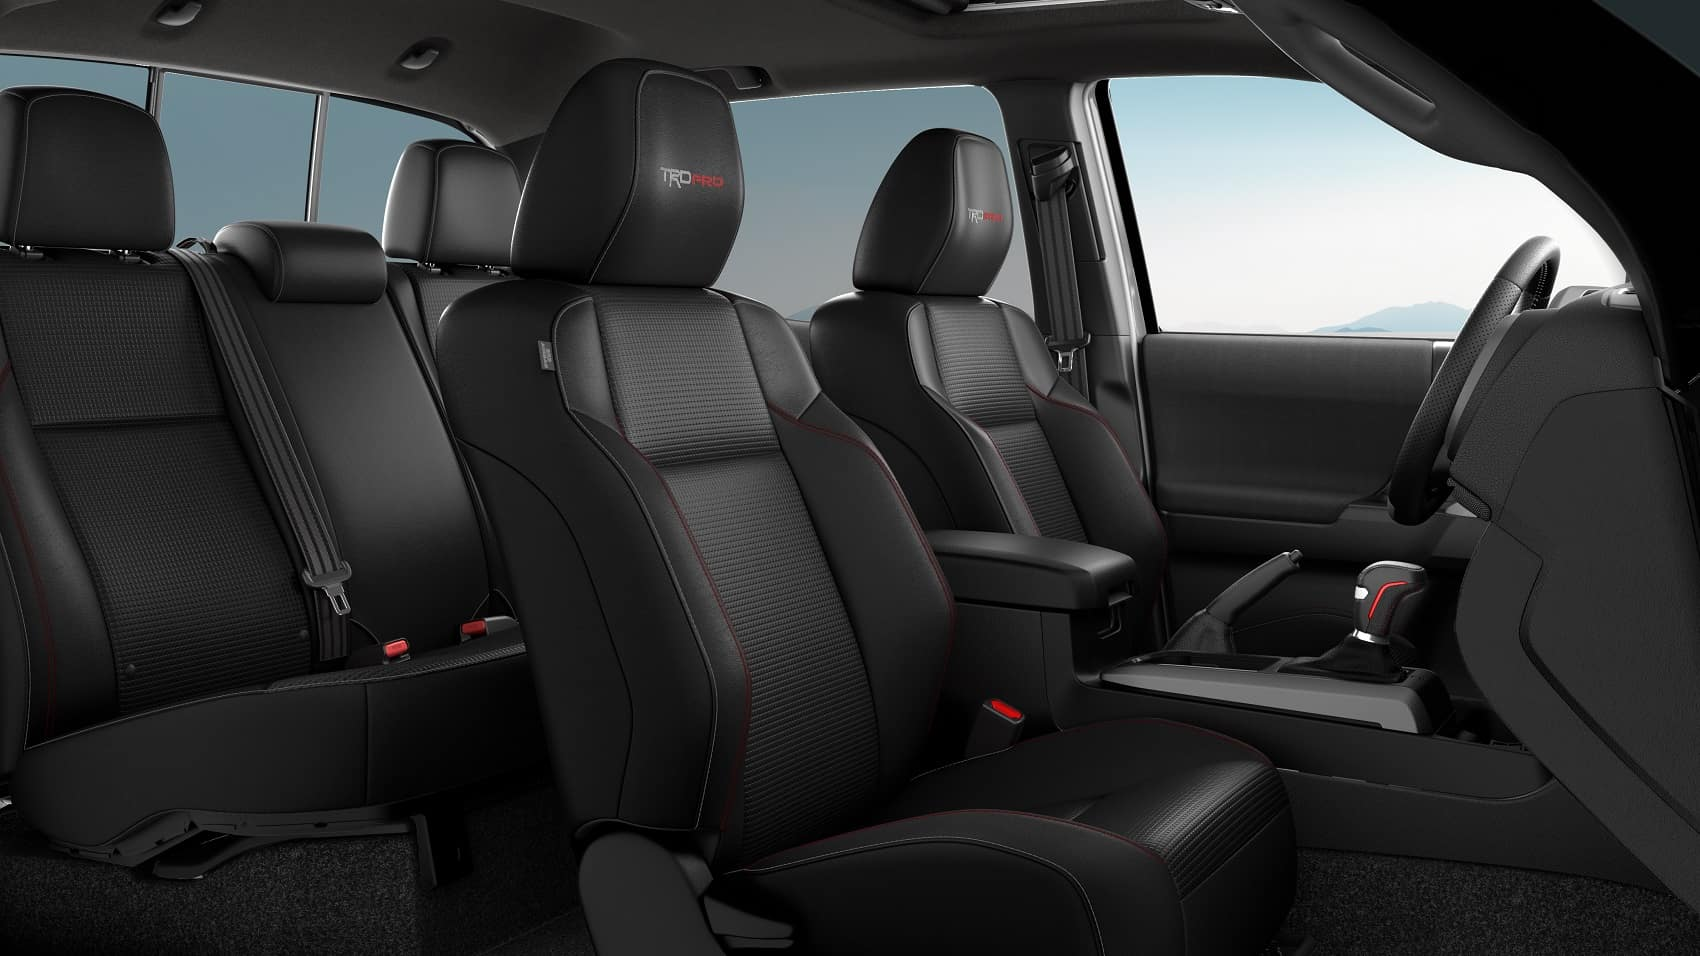 2020 Toyota Tacoma Interior with Black TRD Pro leather-trimmed heated front seats